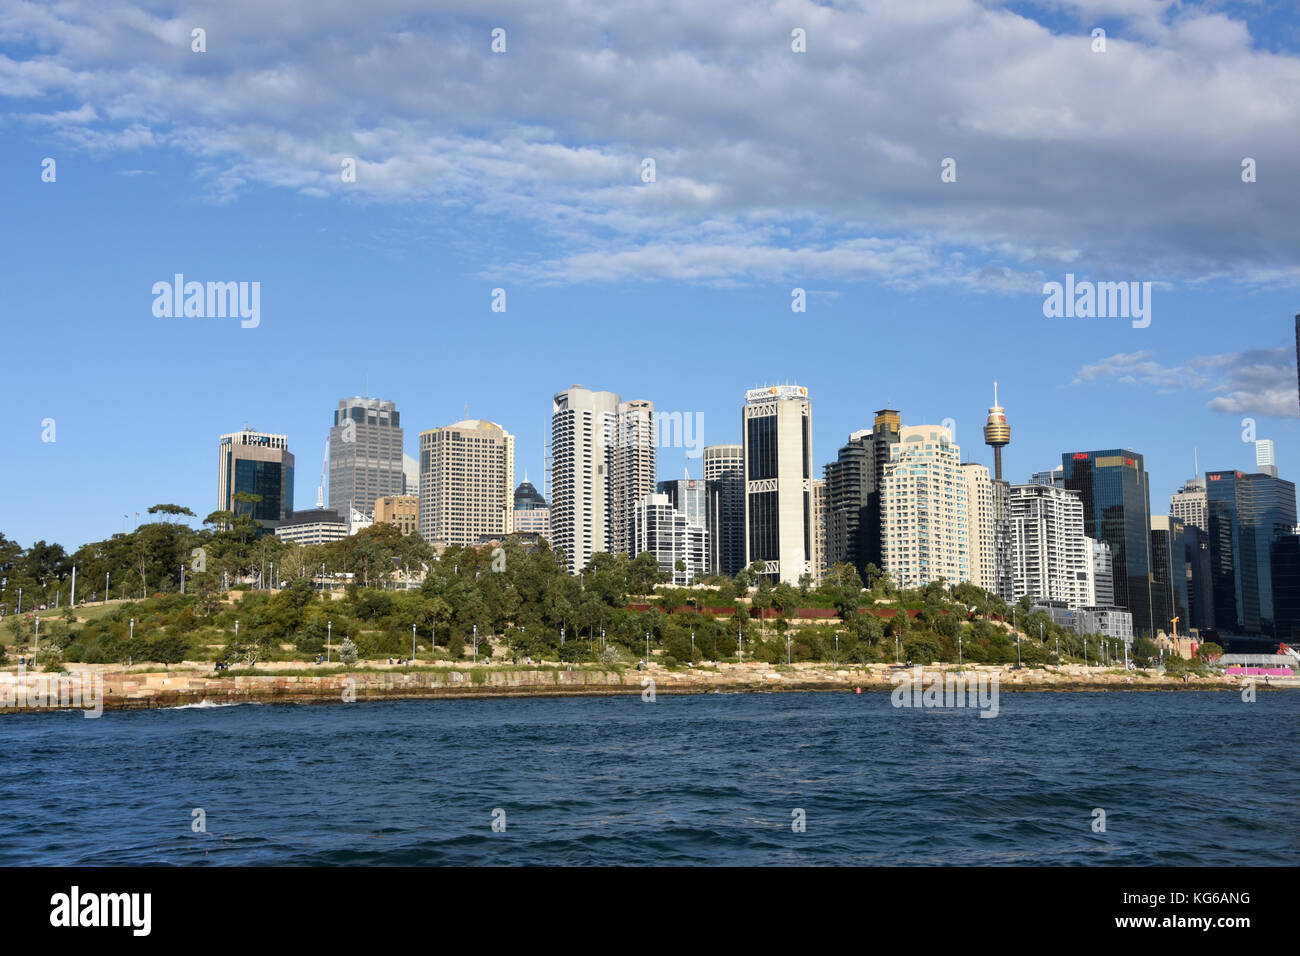 Views of Darling Harbour, Sydney - Stock Image